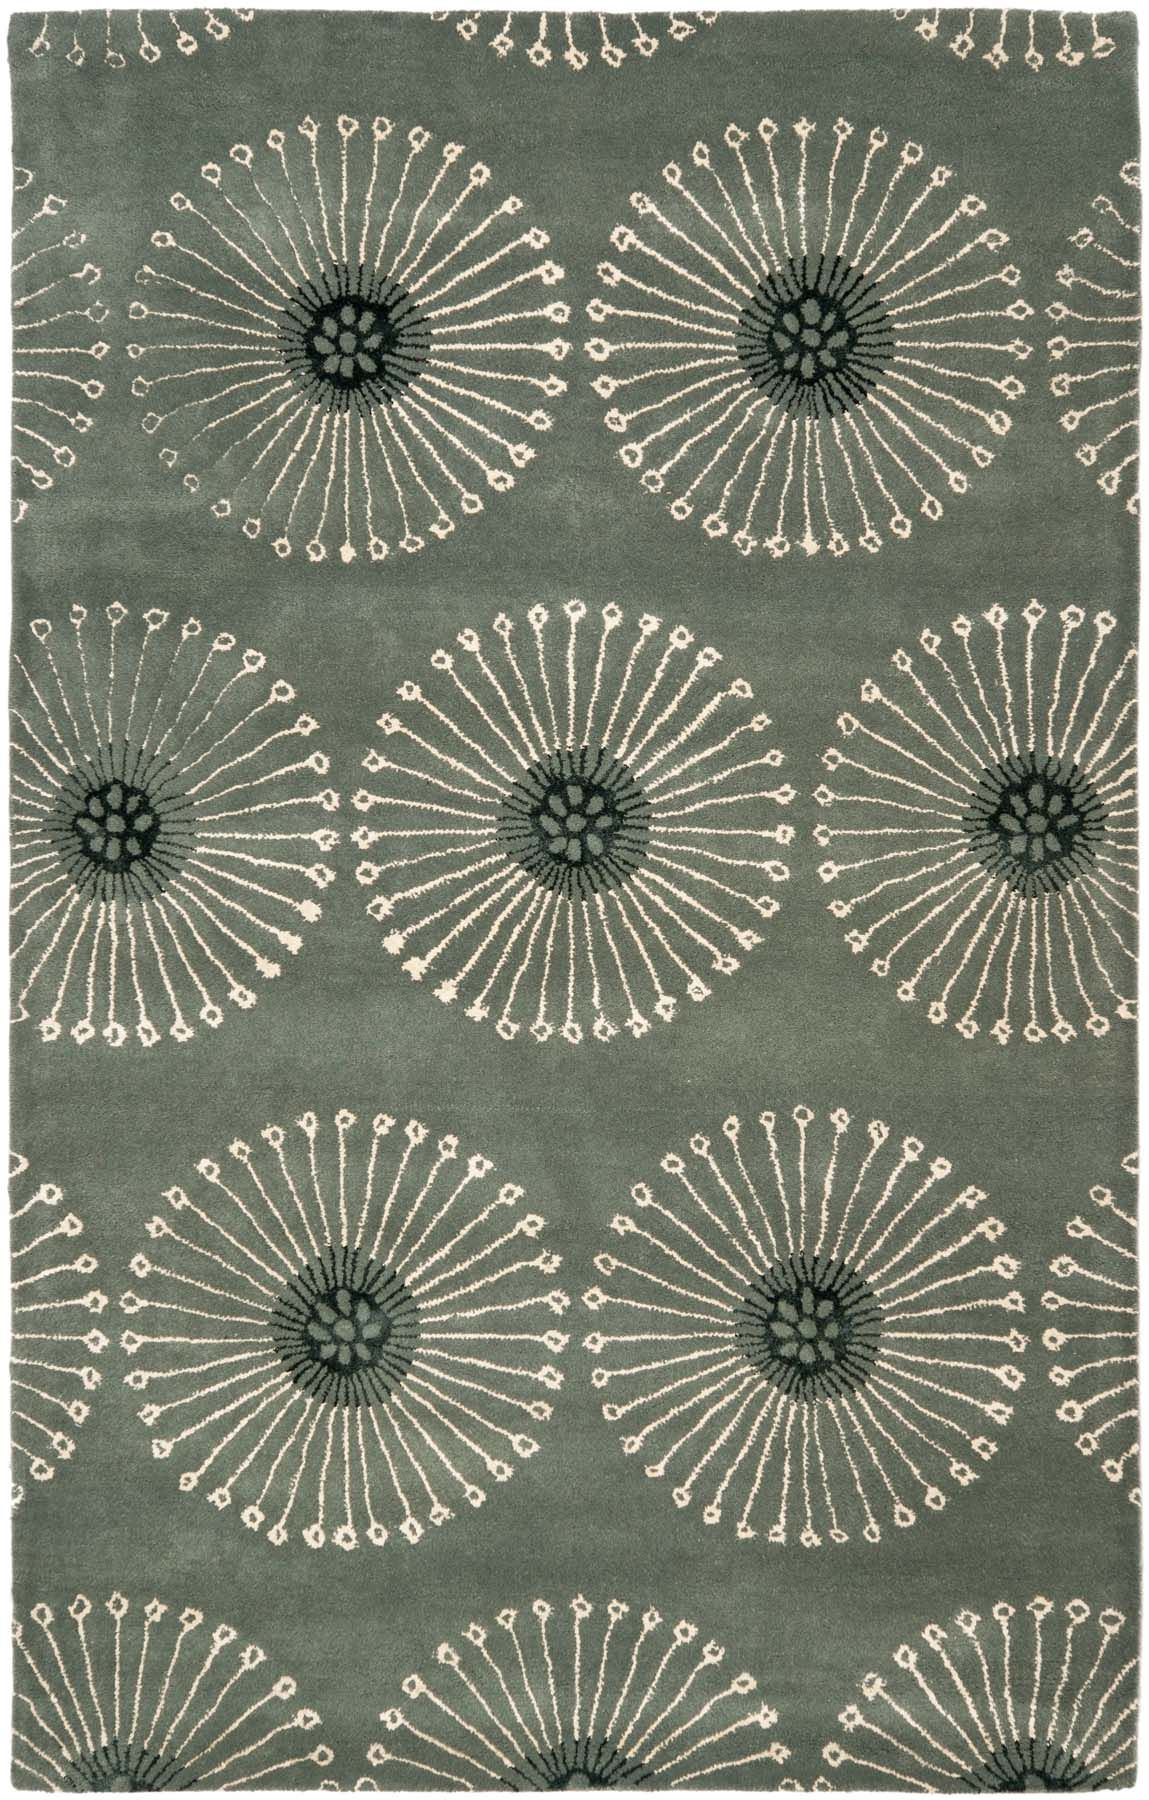 Teppich Formen Rug Jdk321b Jamie Drake Area Rugs By Meins This Is